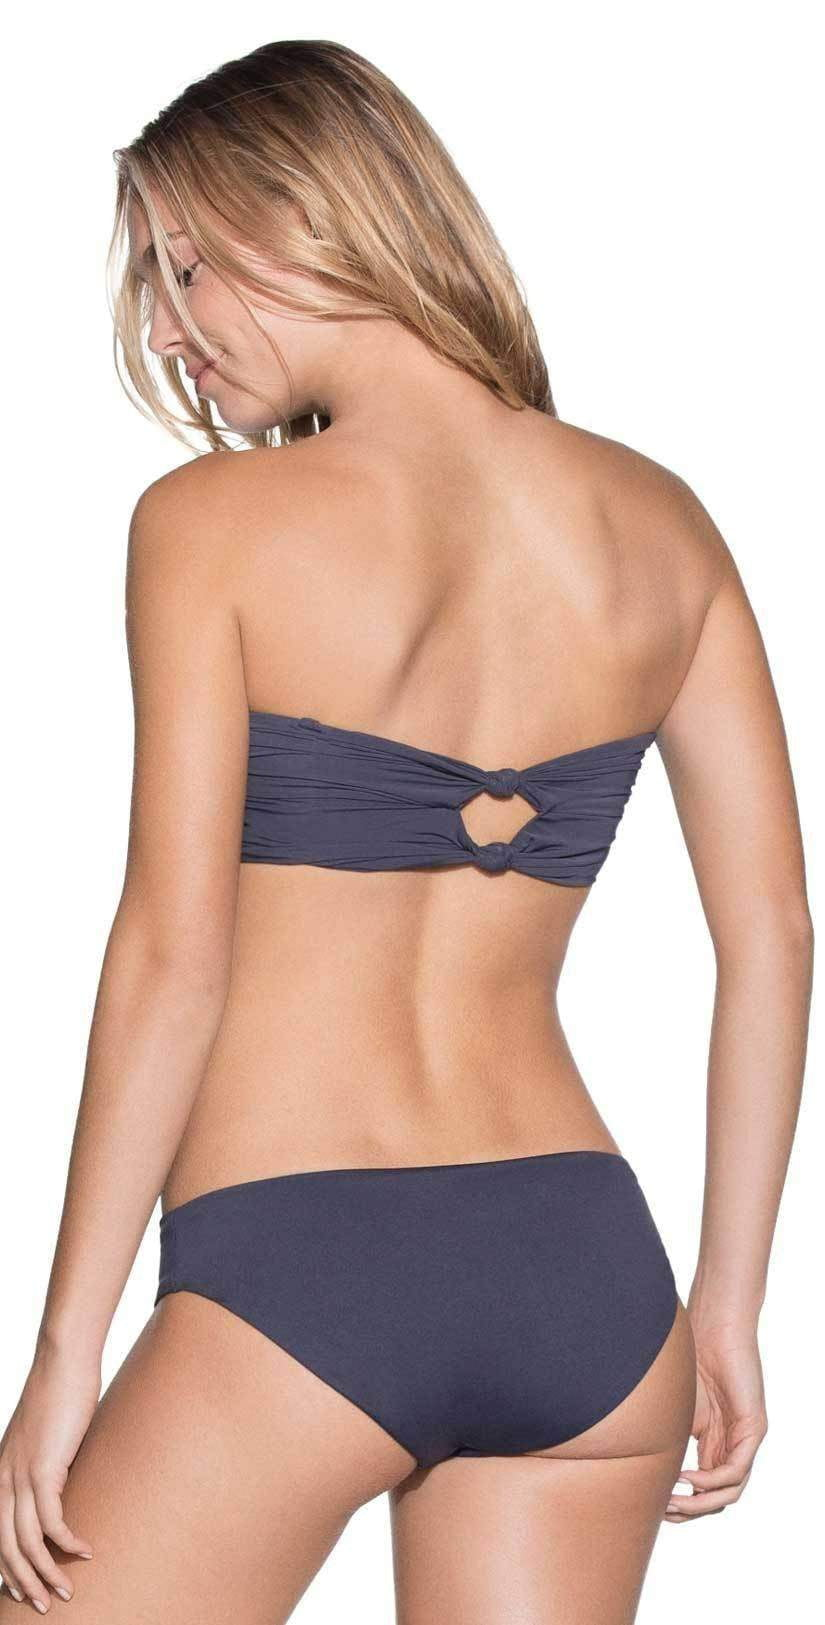 Maaji Glow In the Dark Moonless Night Hammocks Bikini Back View